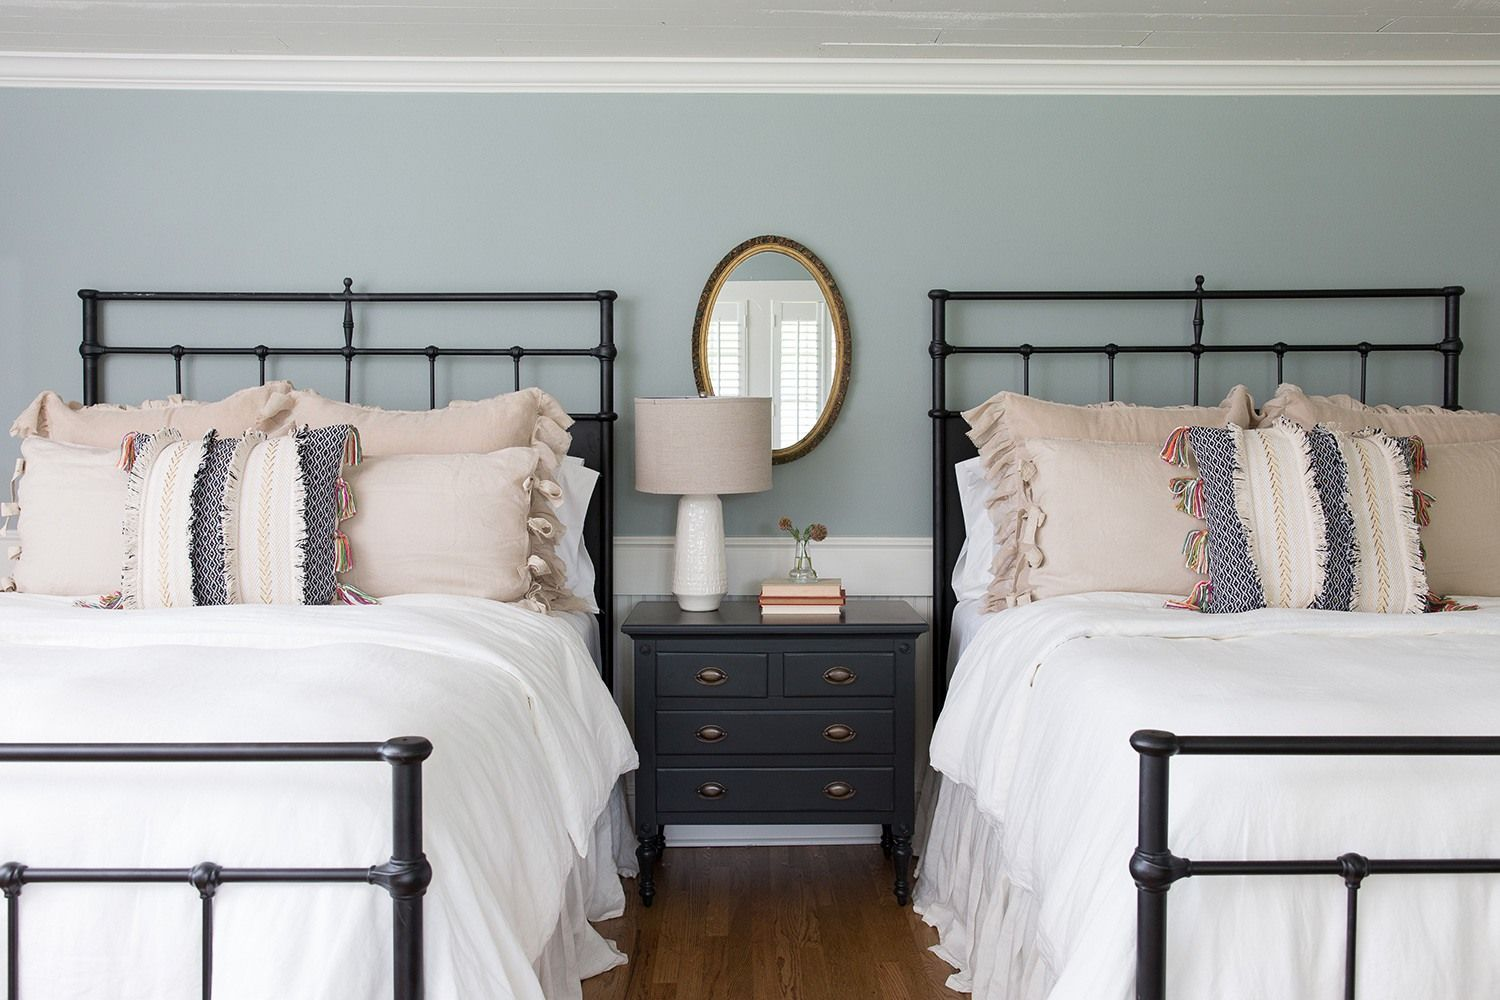 Where does joanna gaines buy her bedding - Hillcrest Estate Giveaway Magnolia Chip Joanna Gaines